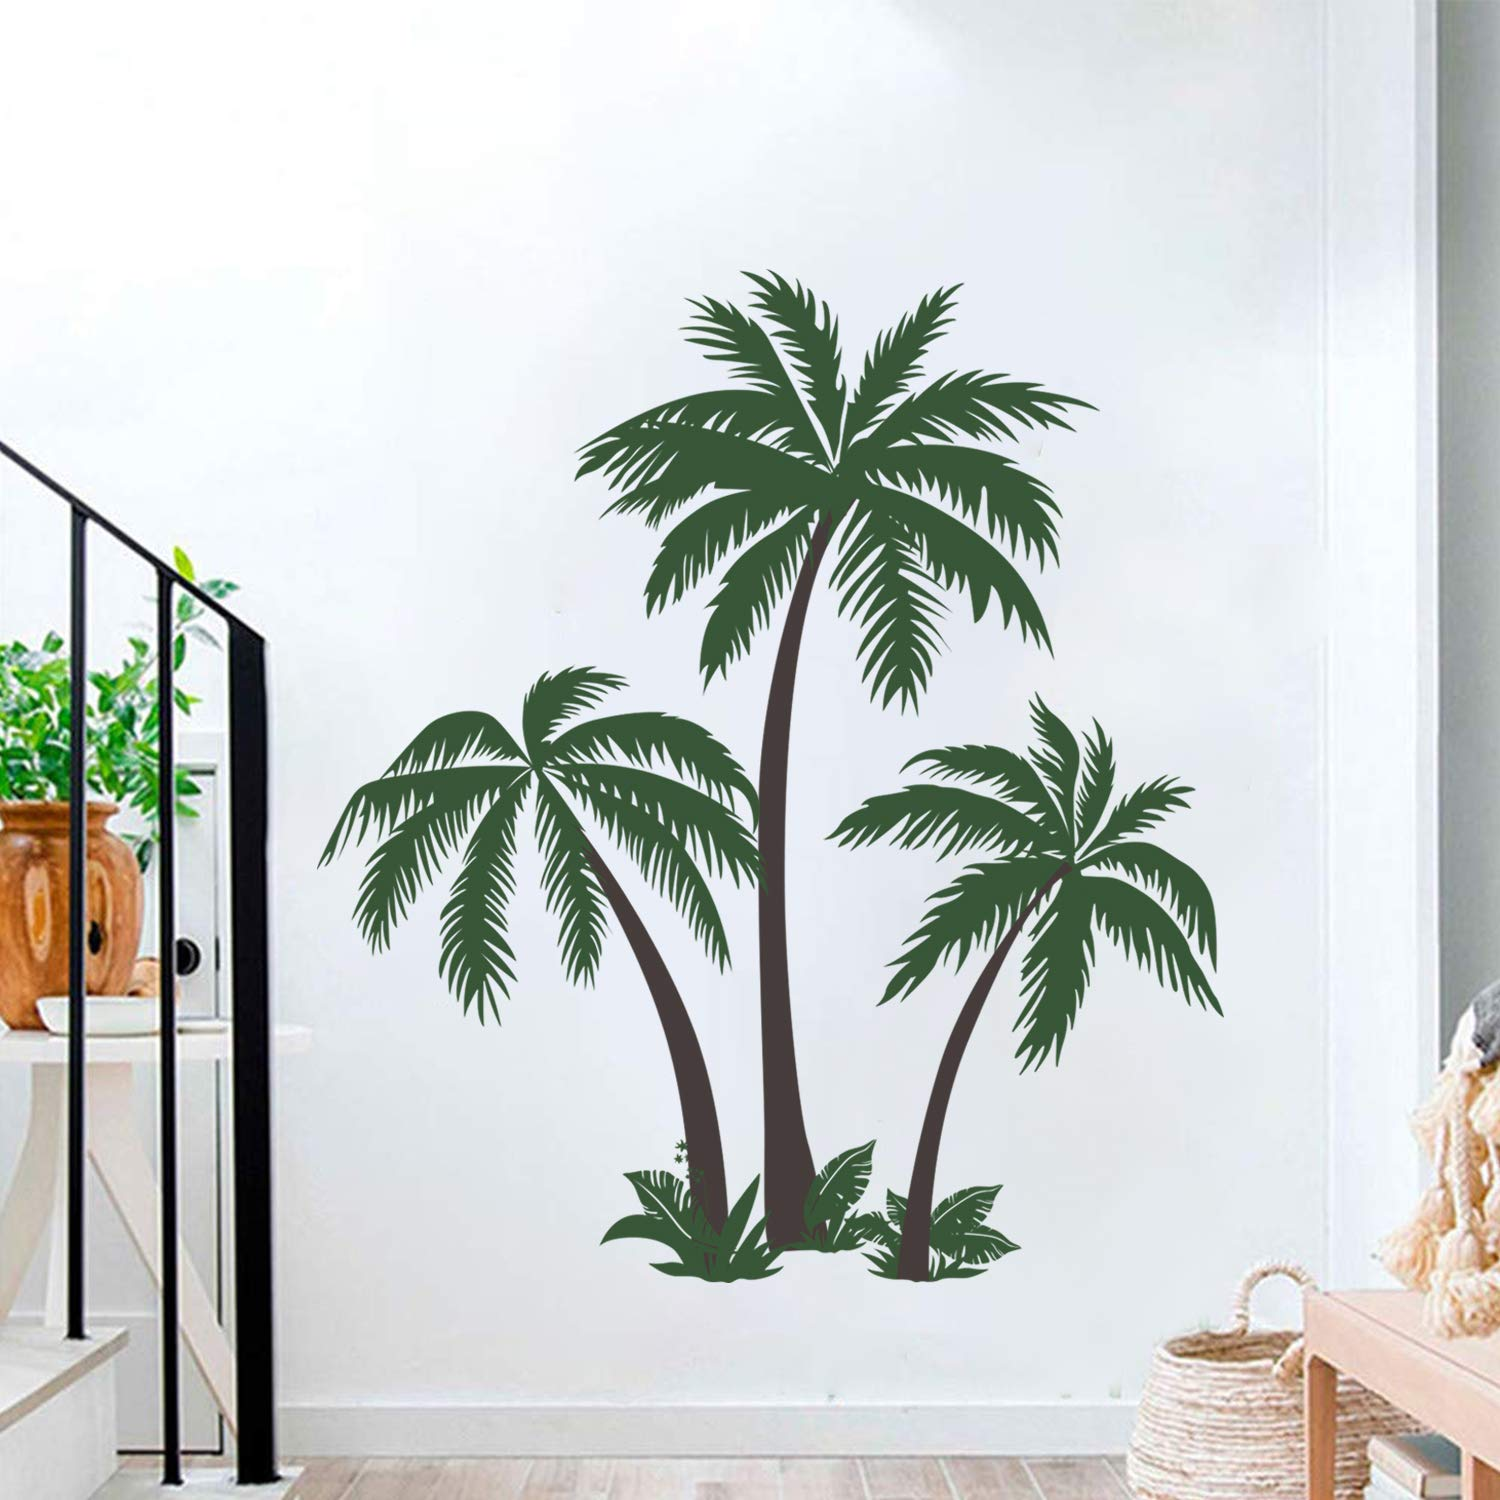 Decalmile Large Palm Tree Wall Decals Tropical Tree Wall Stickers Bedroom Living Room Tv Wall Art Home Decor H 49 Inch Kitchen Dining